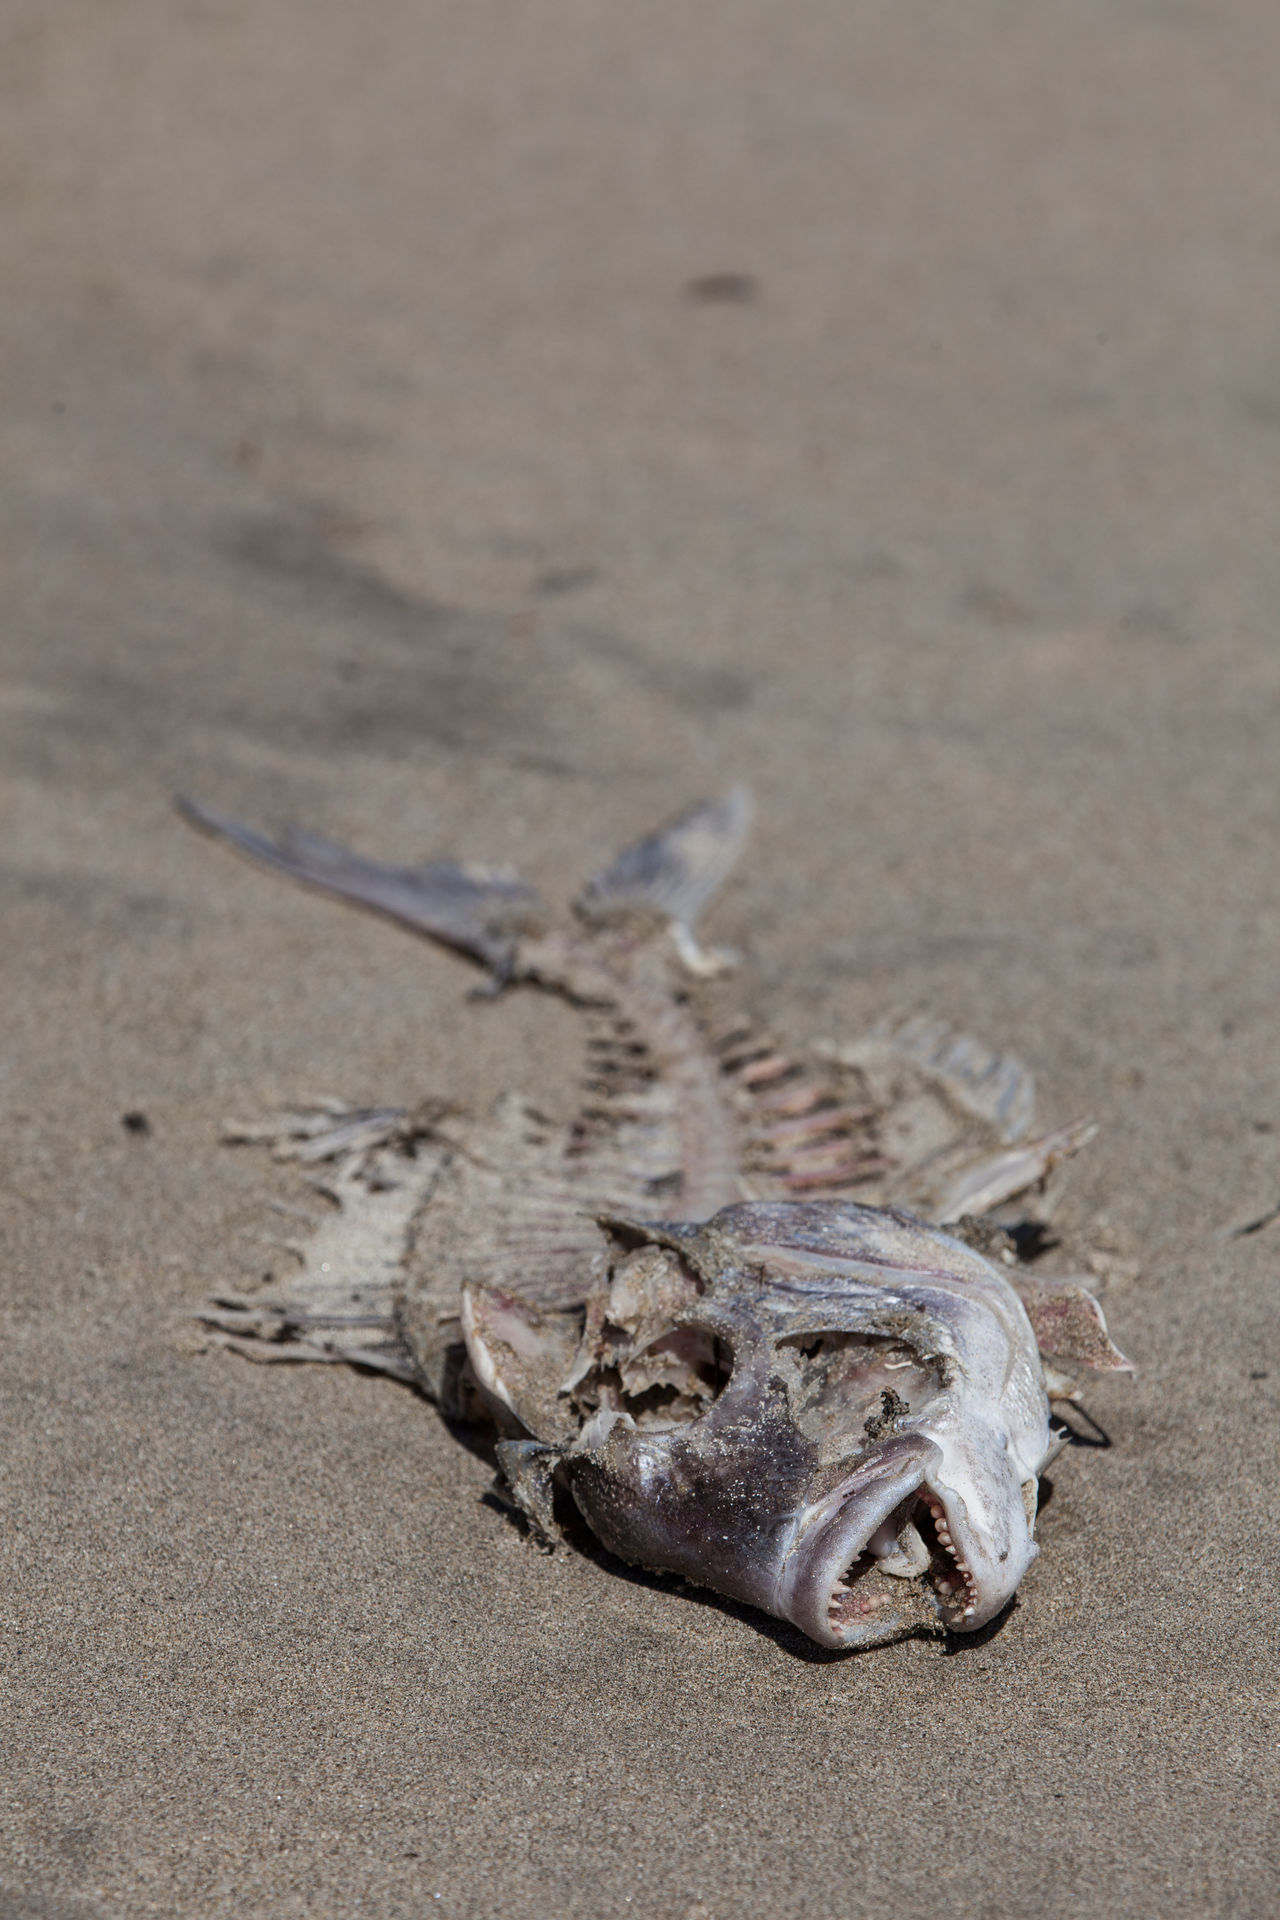 Abandoned Animal Themes Beach Close-up Dead Animal Death Eaten Fish Food Nature Outdoors Sand Sealife Skeleton